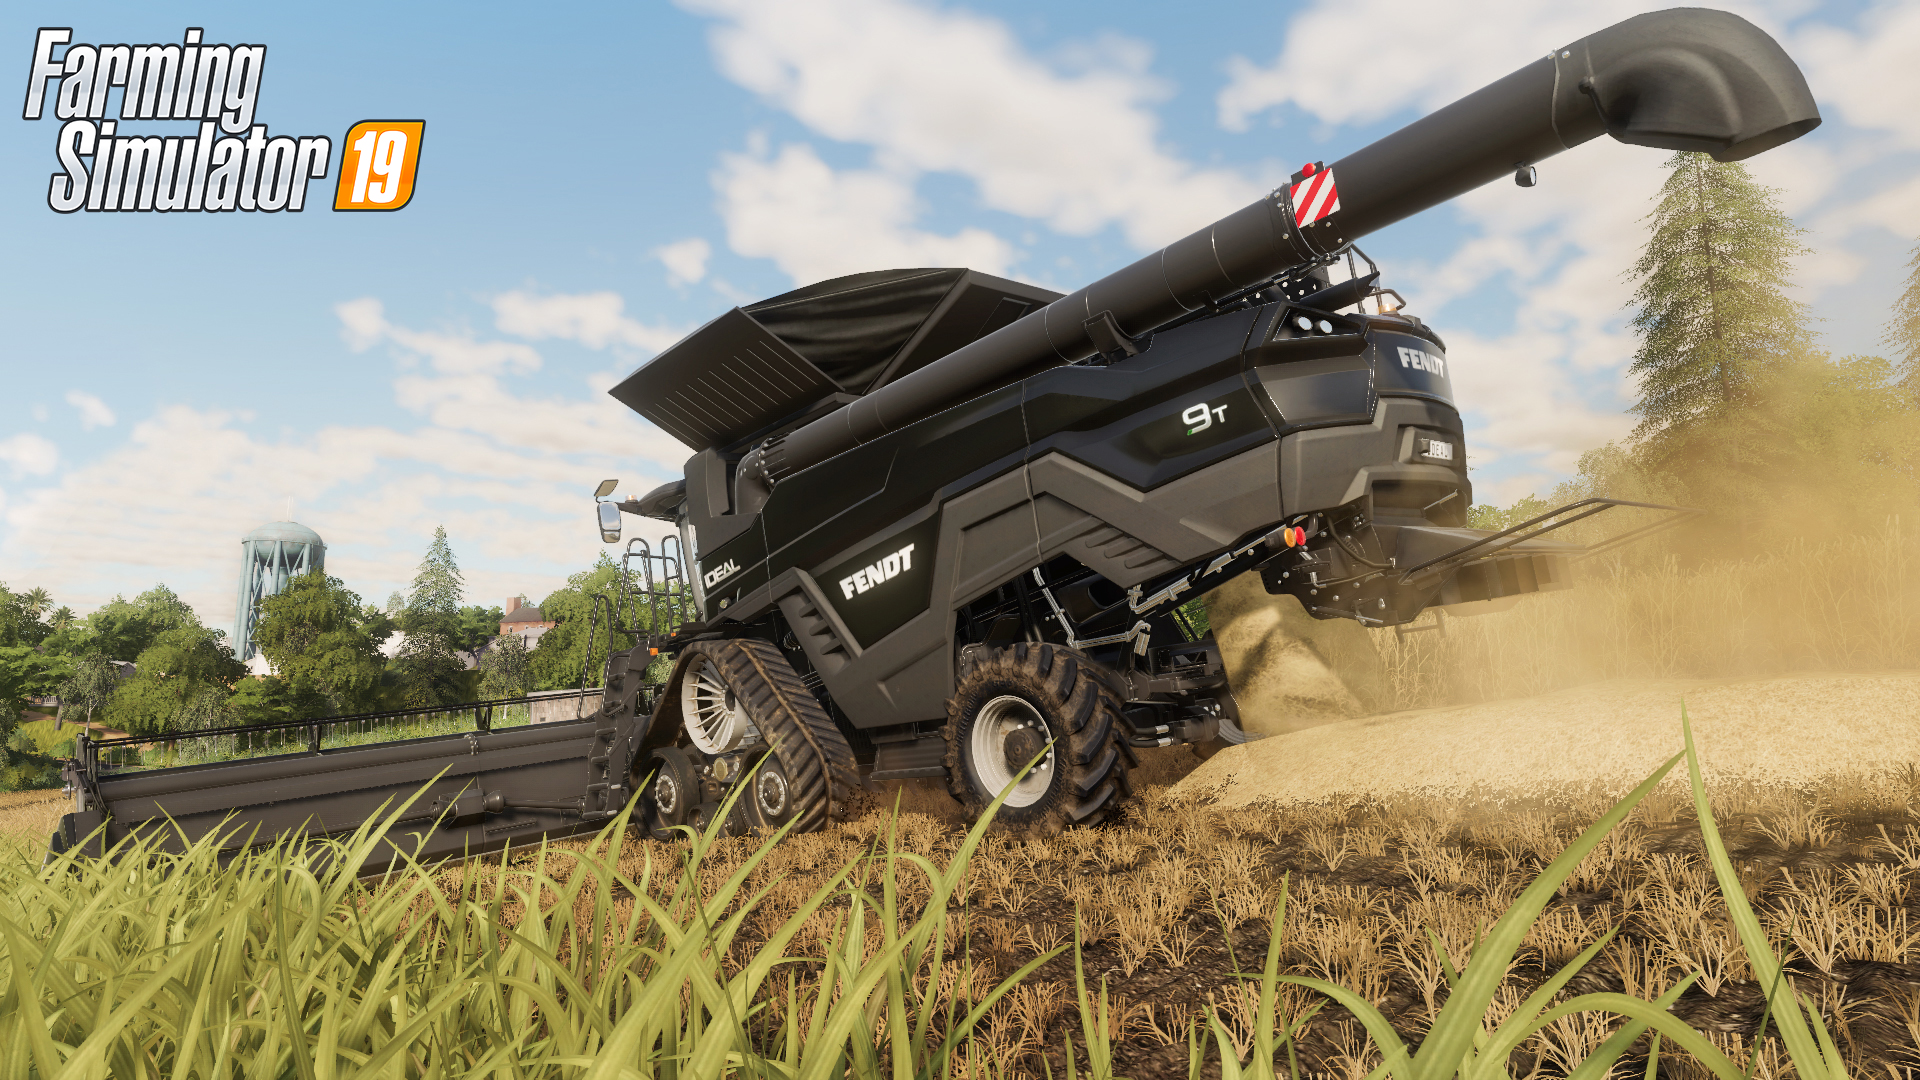 Farming Simulator 19 | Farming Simulator Wiki | FANDOM powered by Wikia